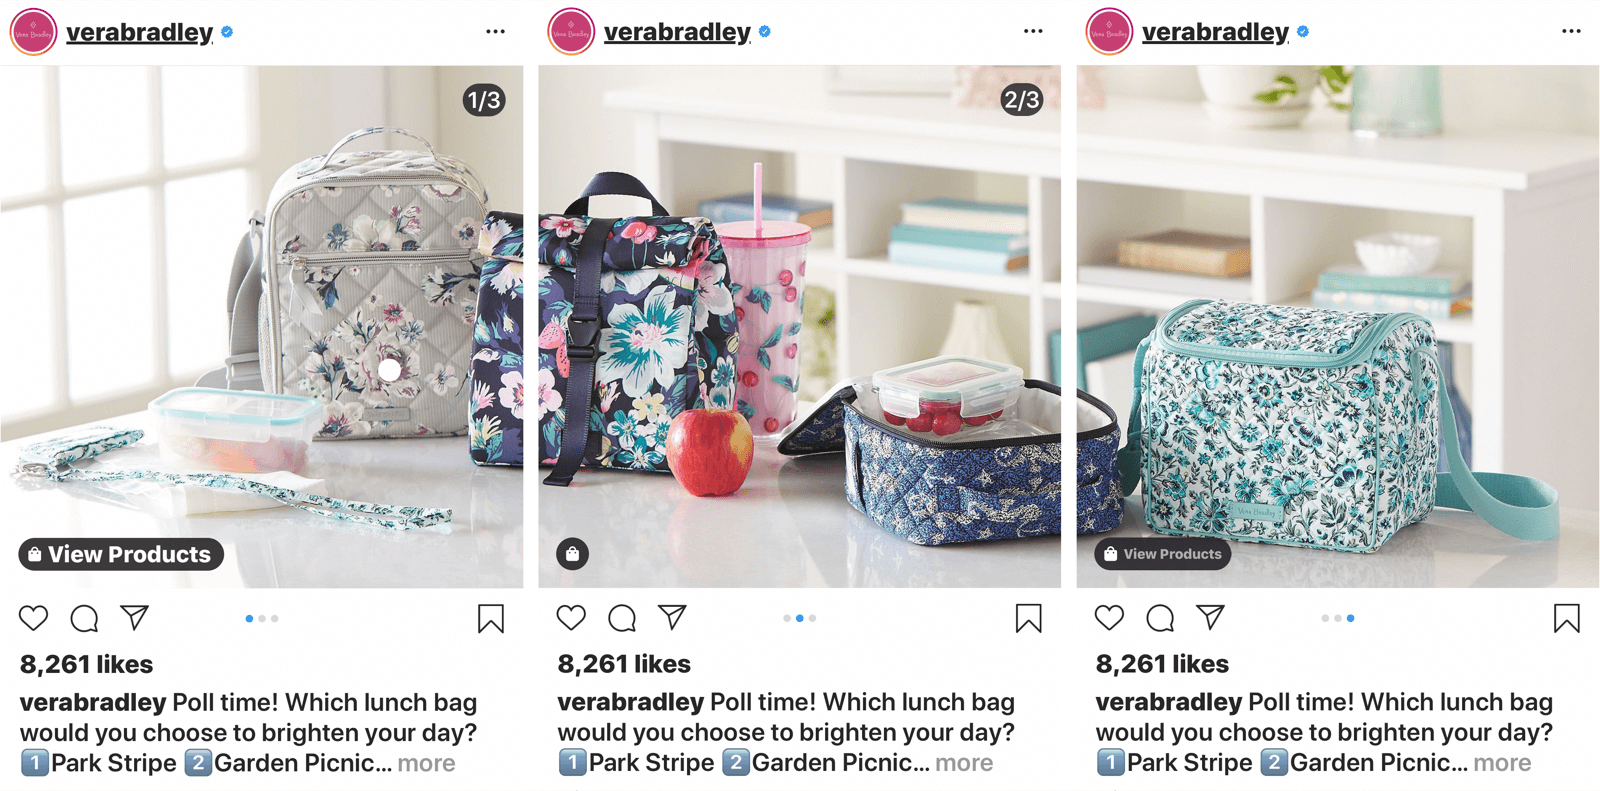 instagram carousel post with 3 images